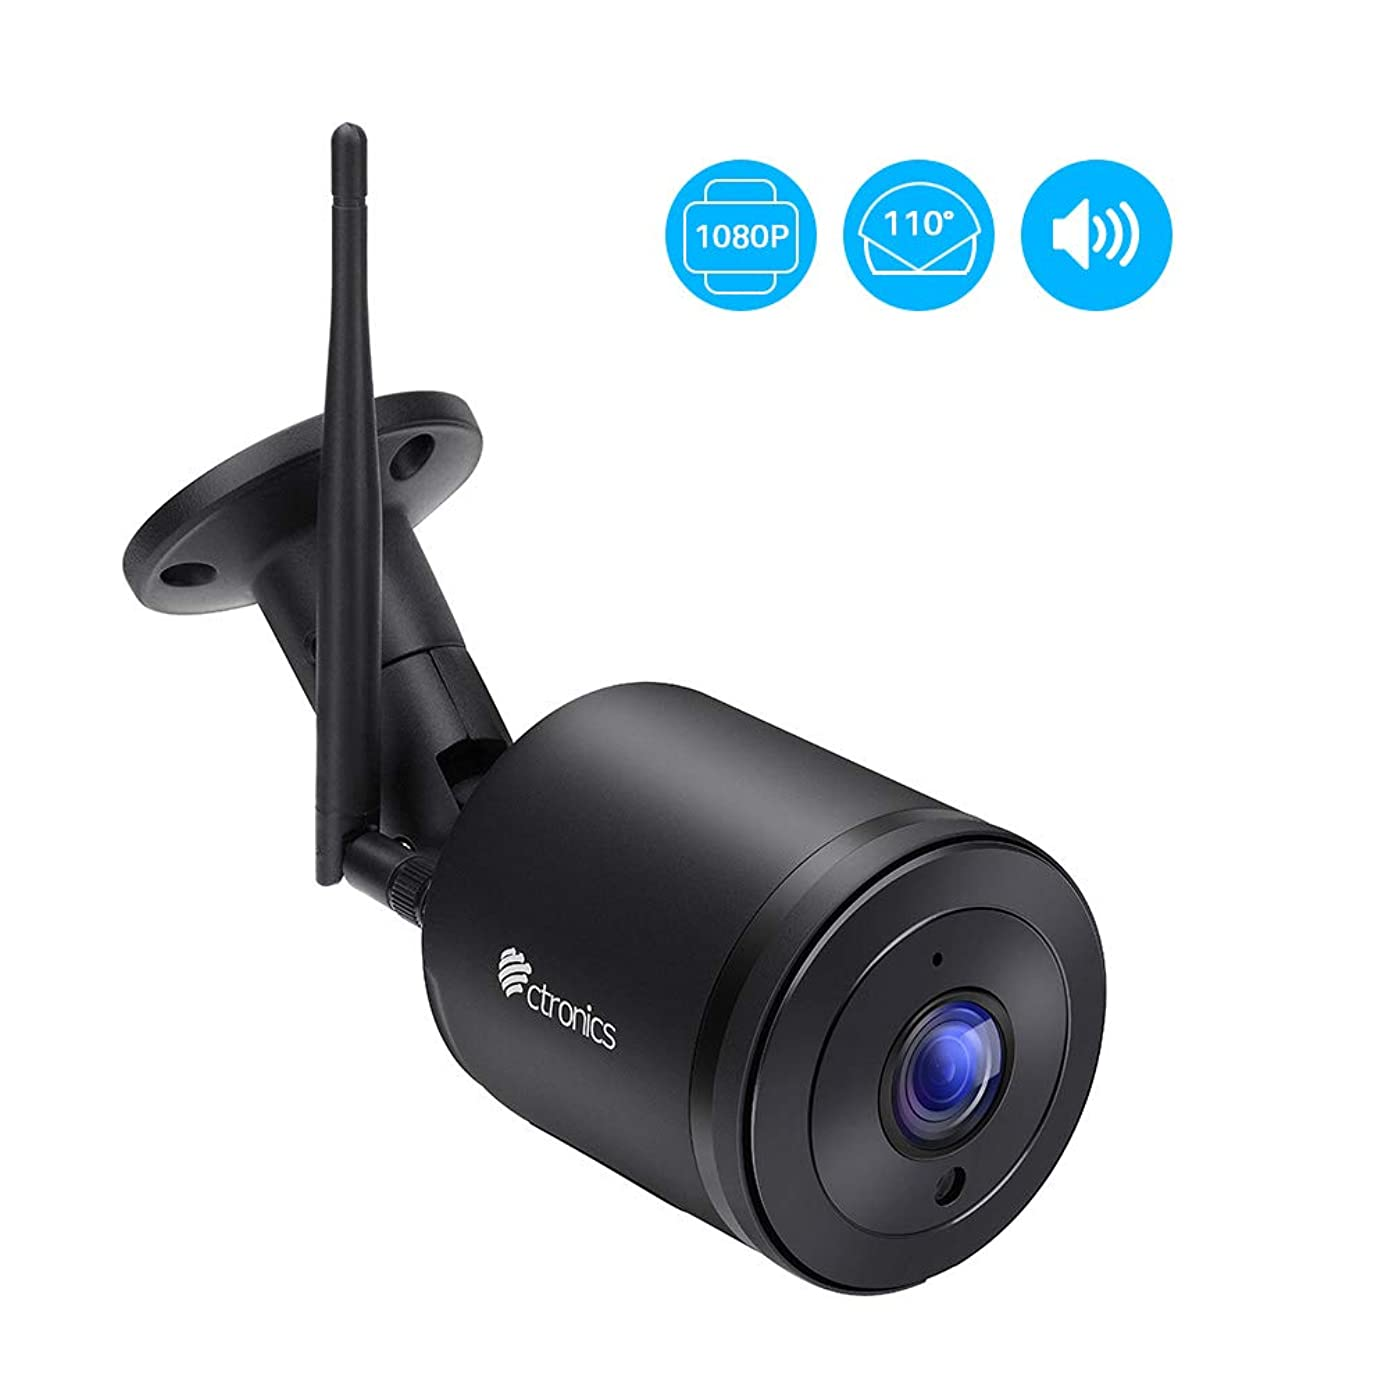 Ctronics Security Camera Outdoor, 1080P WiFi IP Surveillance Camera, Wireless Bullet Camera with 110° Wide View, Two-Way Audio, Instant Notification of Motion Detection, 98ft Night Vision, Black